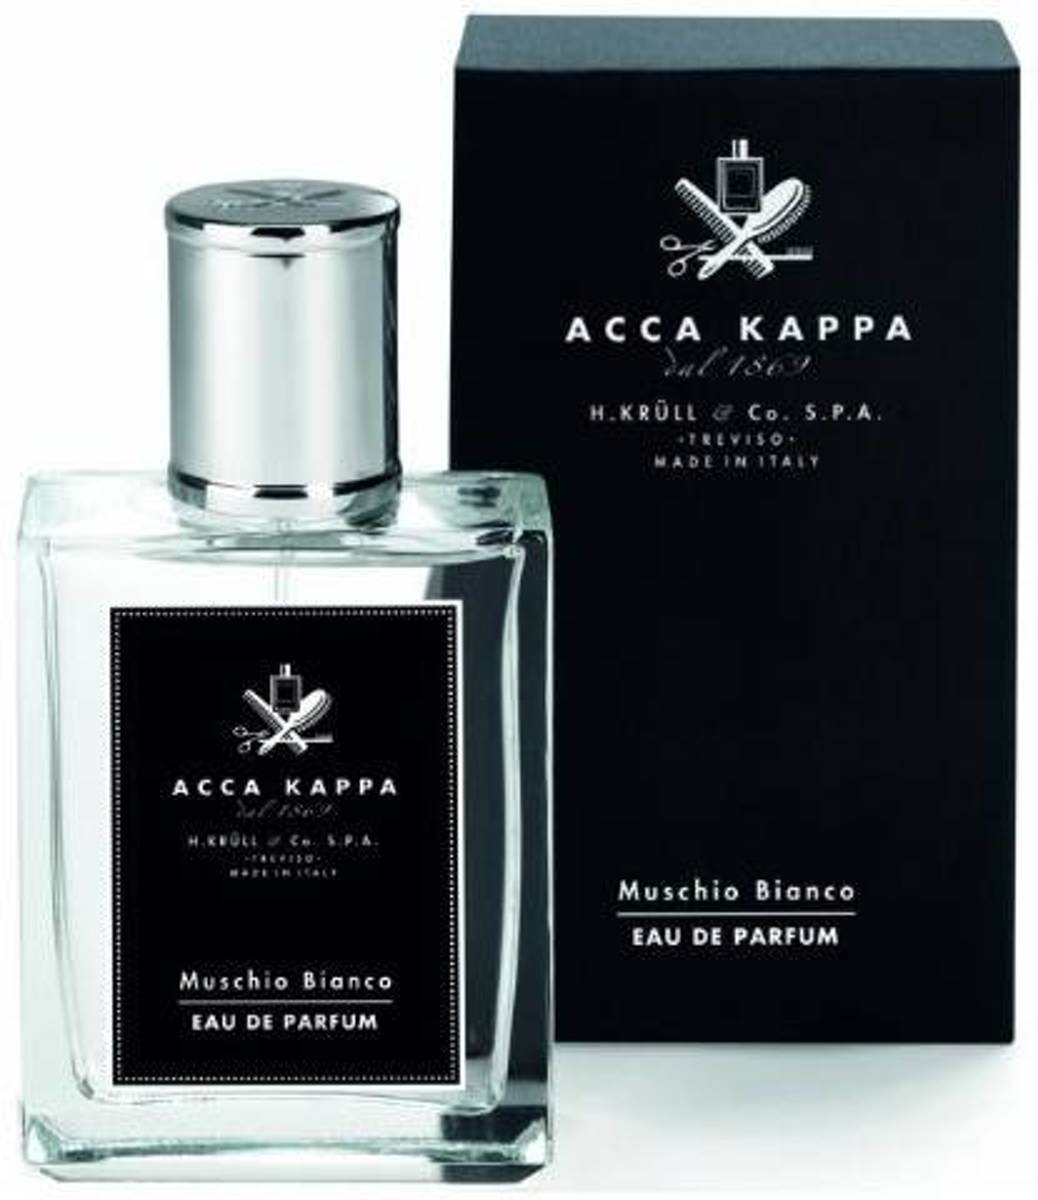 Acca Kappa White Moss Eau de Parfum Spray 100 ml